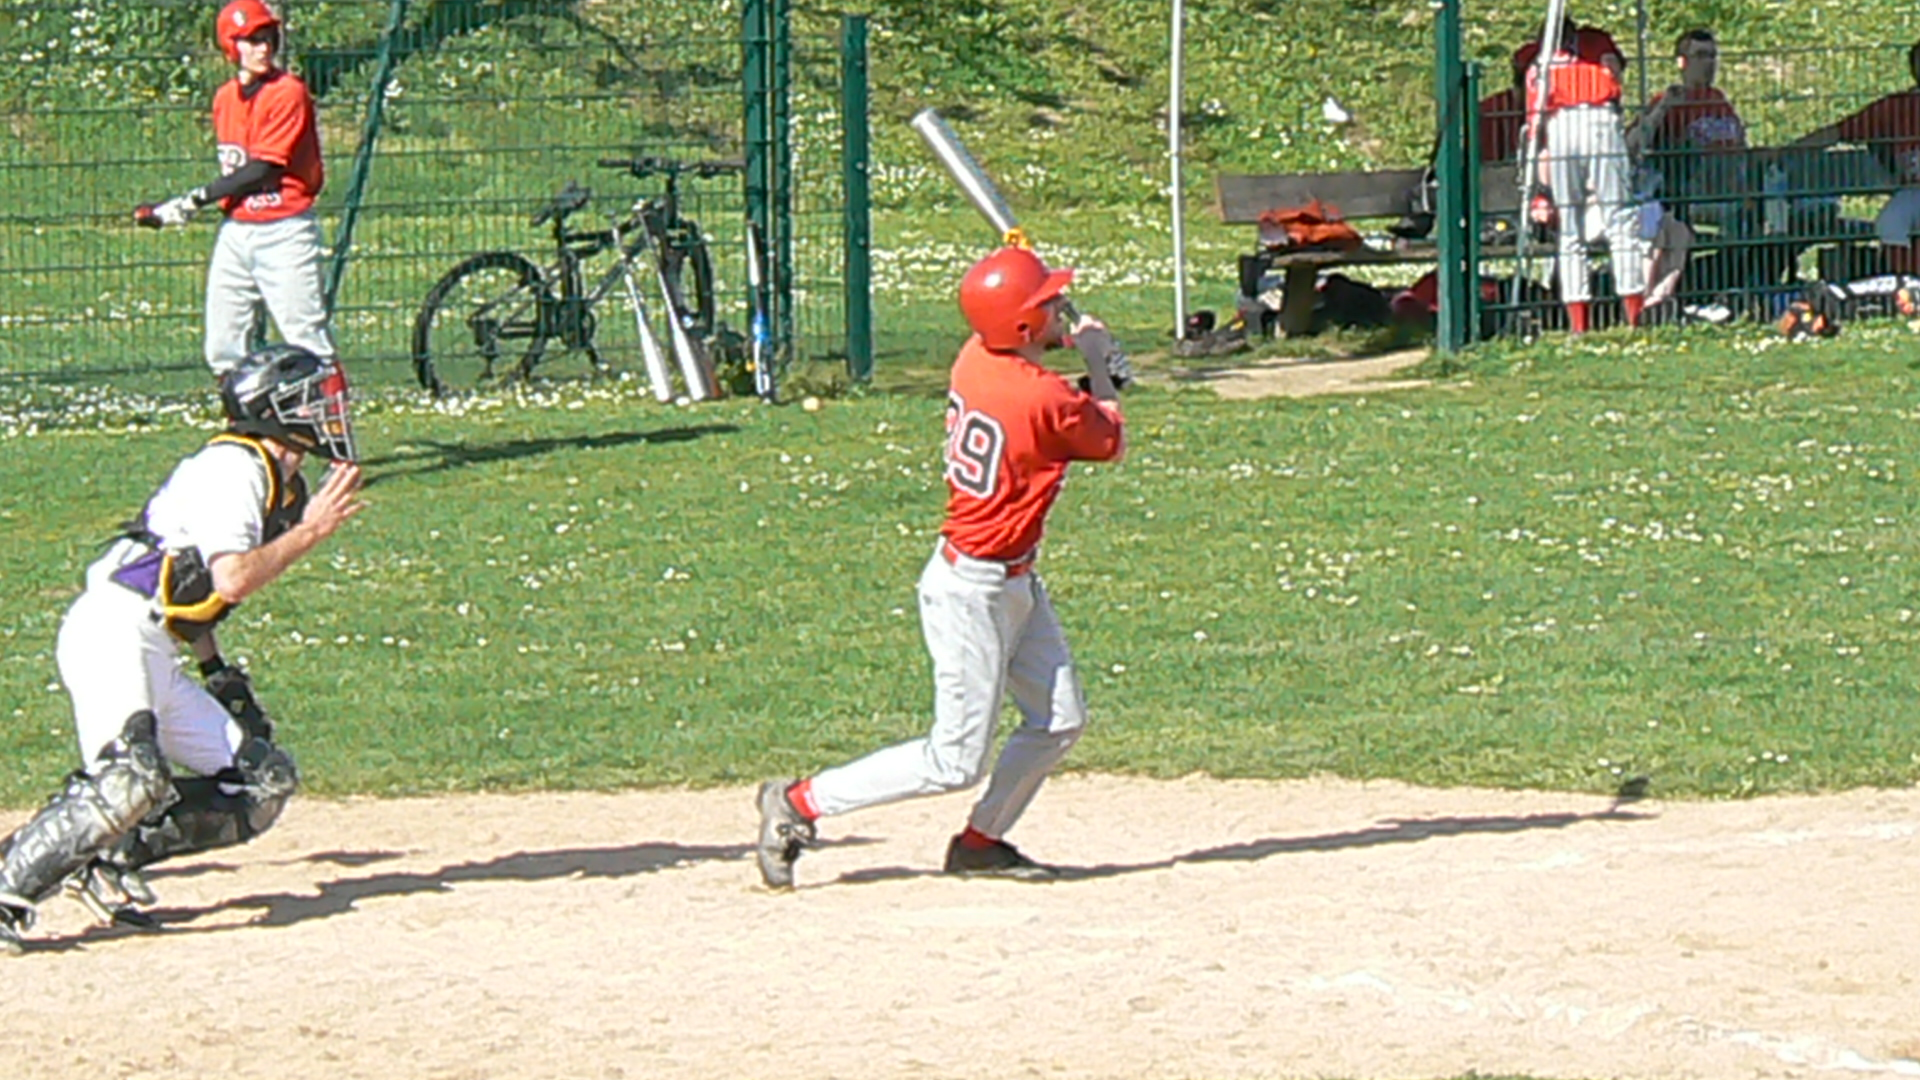 2011-04-10 - Baseball vs PUC 3 a Cergy (55)